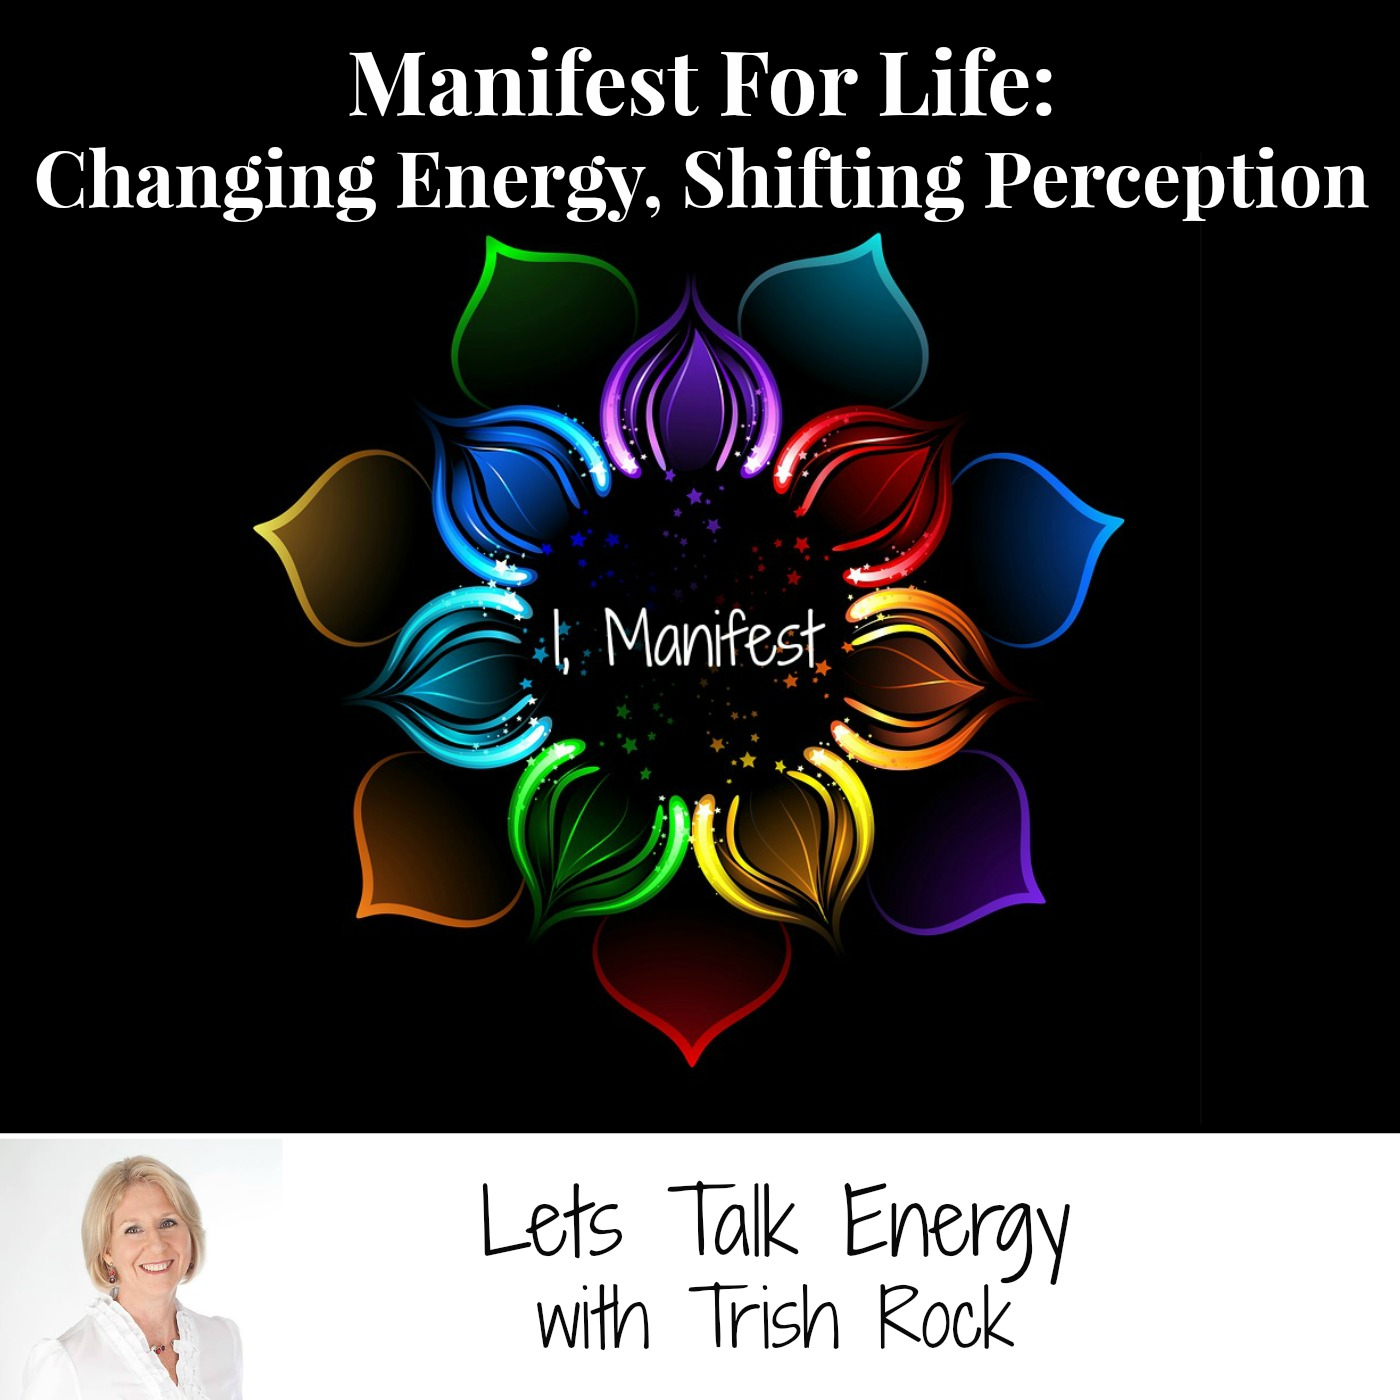 Manifest For Life: Lets Talk Energy